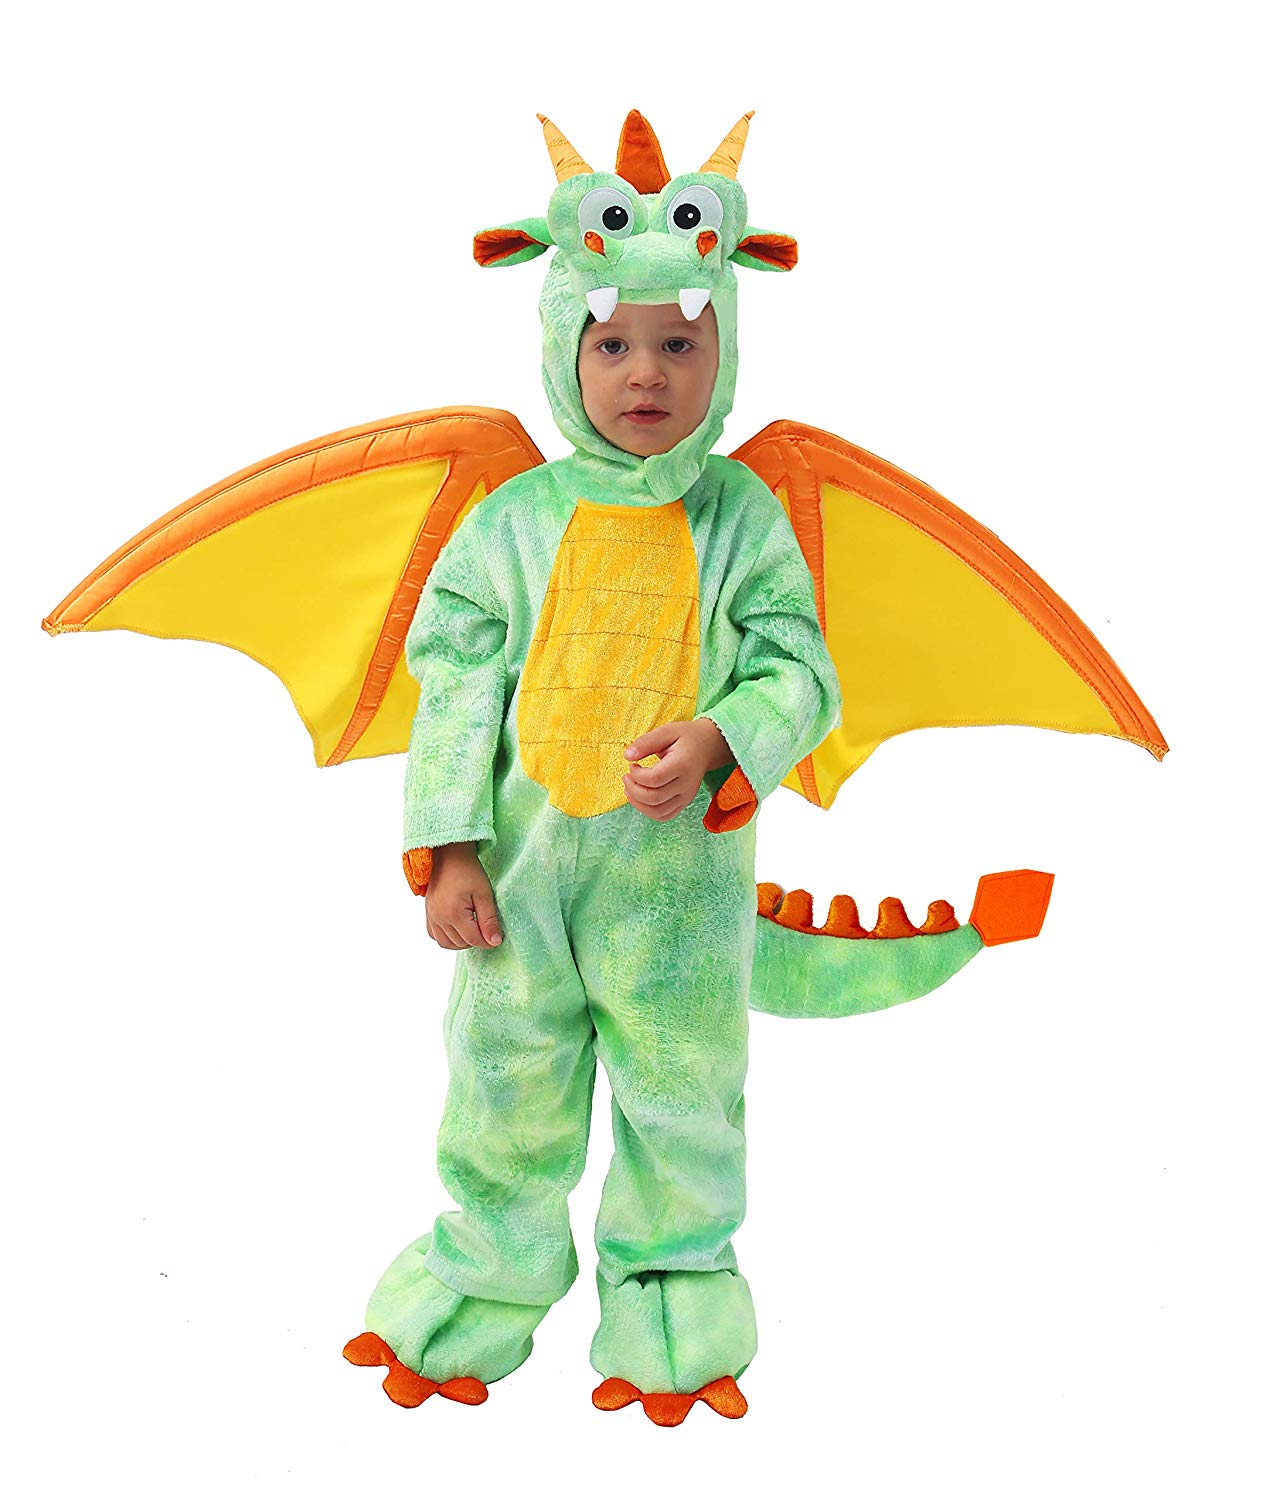 Spooktacular Creations Deluxe Dragon Costume Set with Toys for Kids Role Play